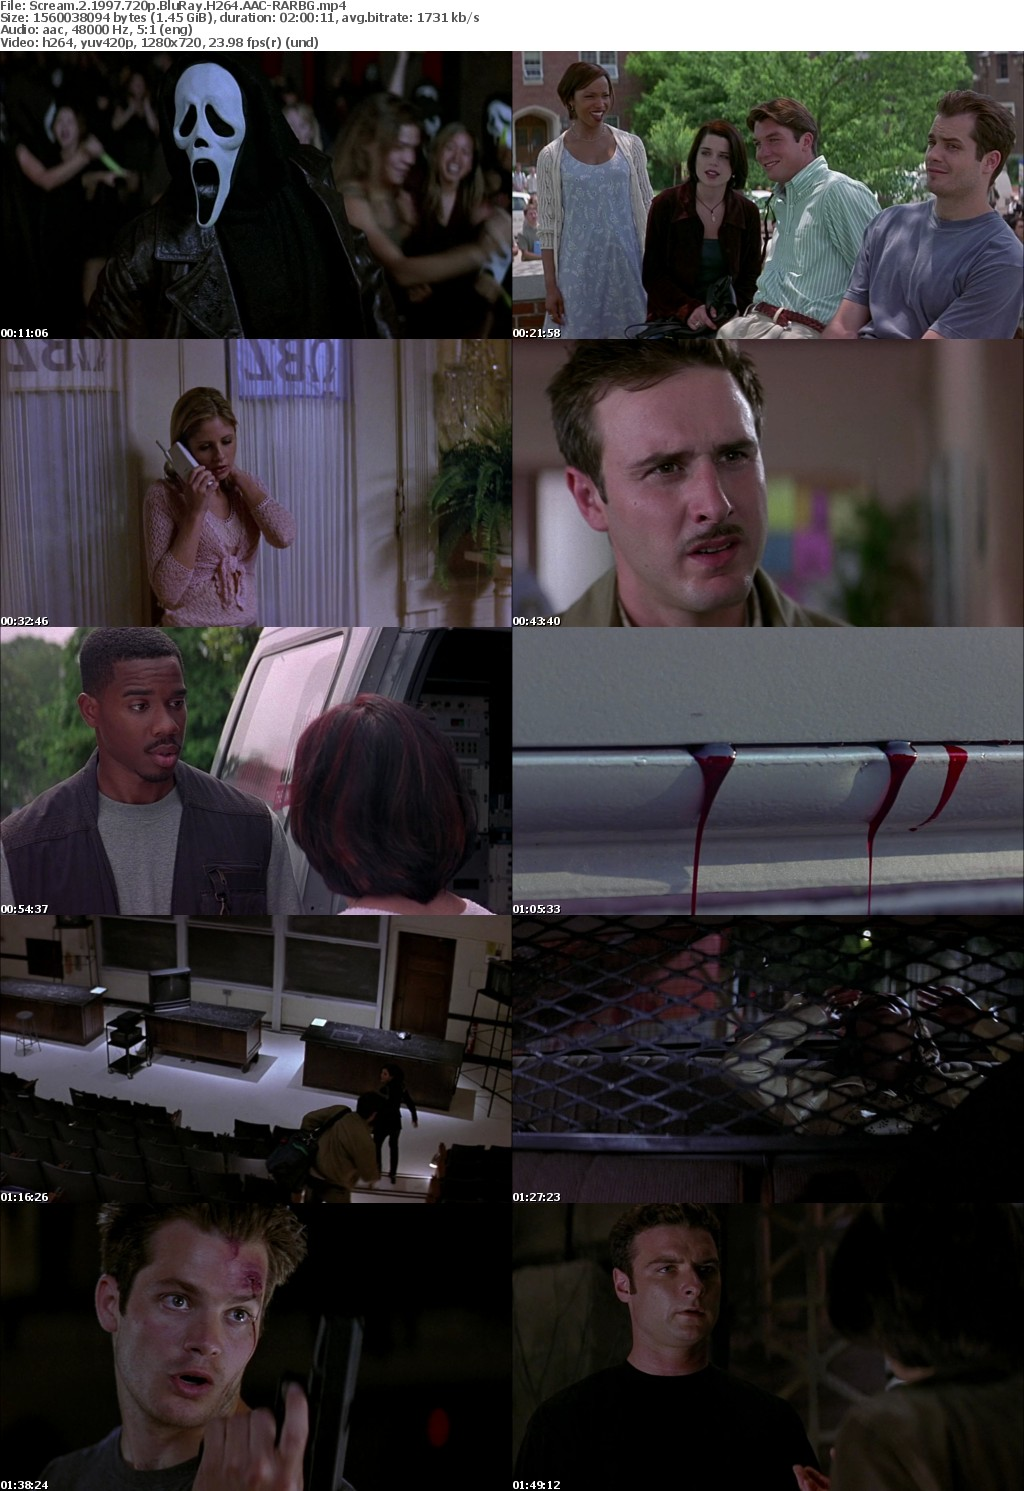 Scream 2 (1997) 720p BluRay H264 AAC-RARBG